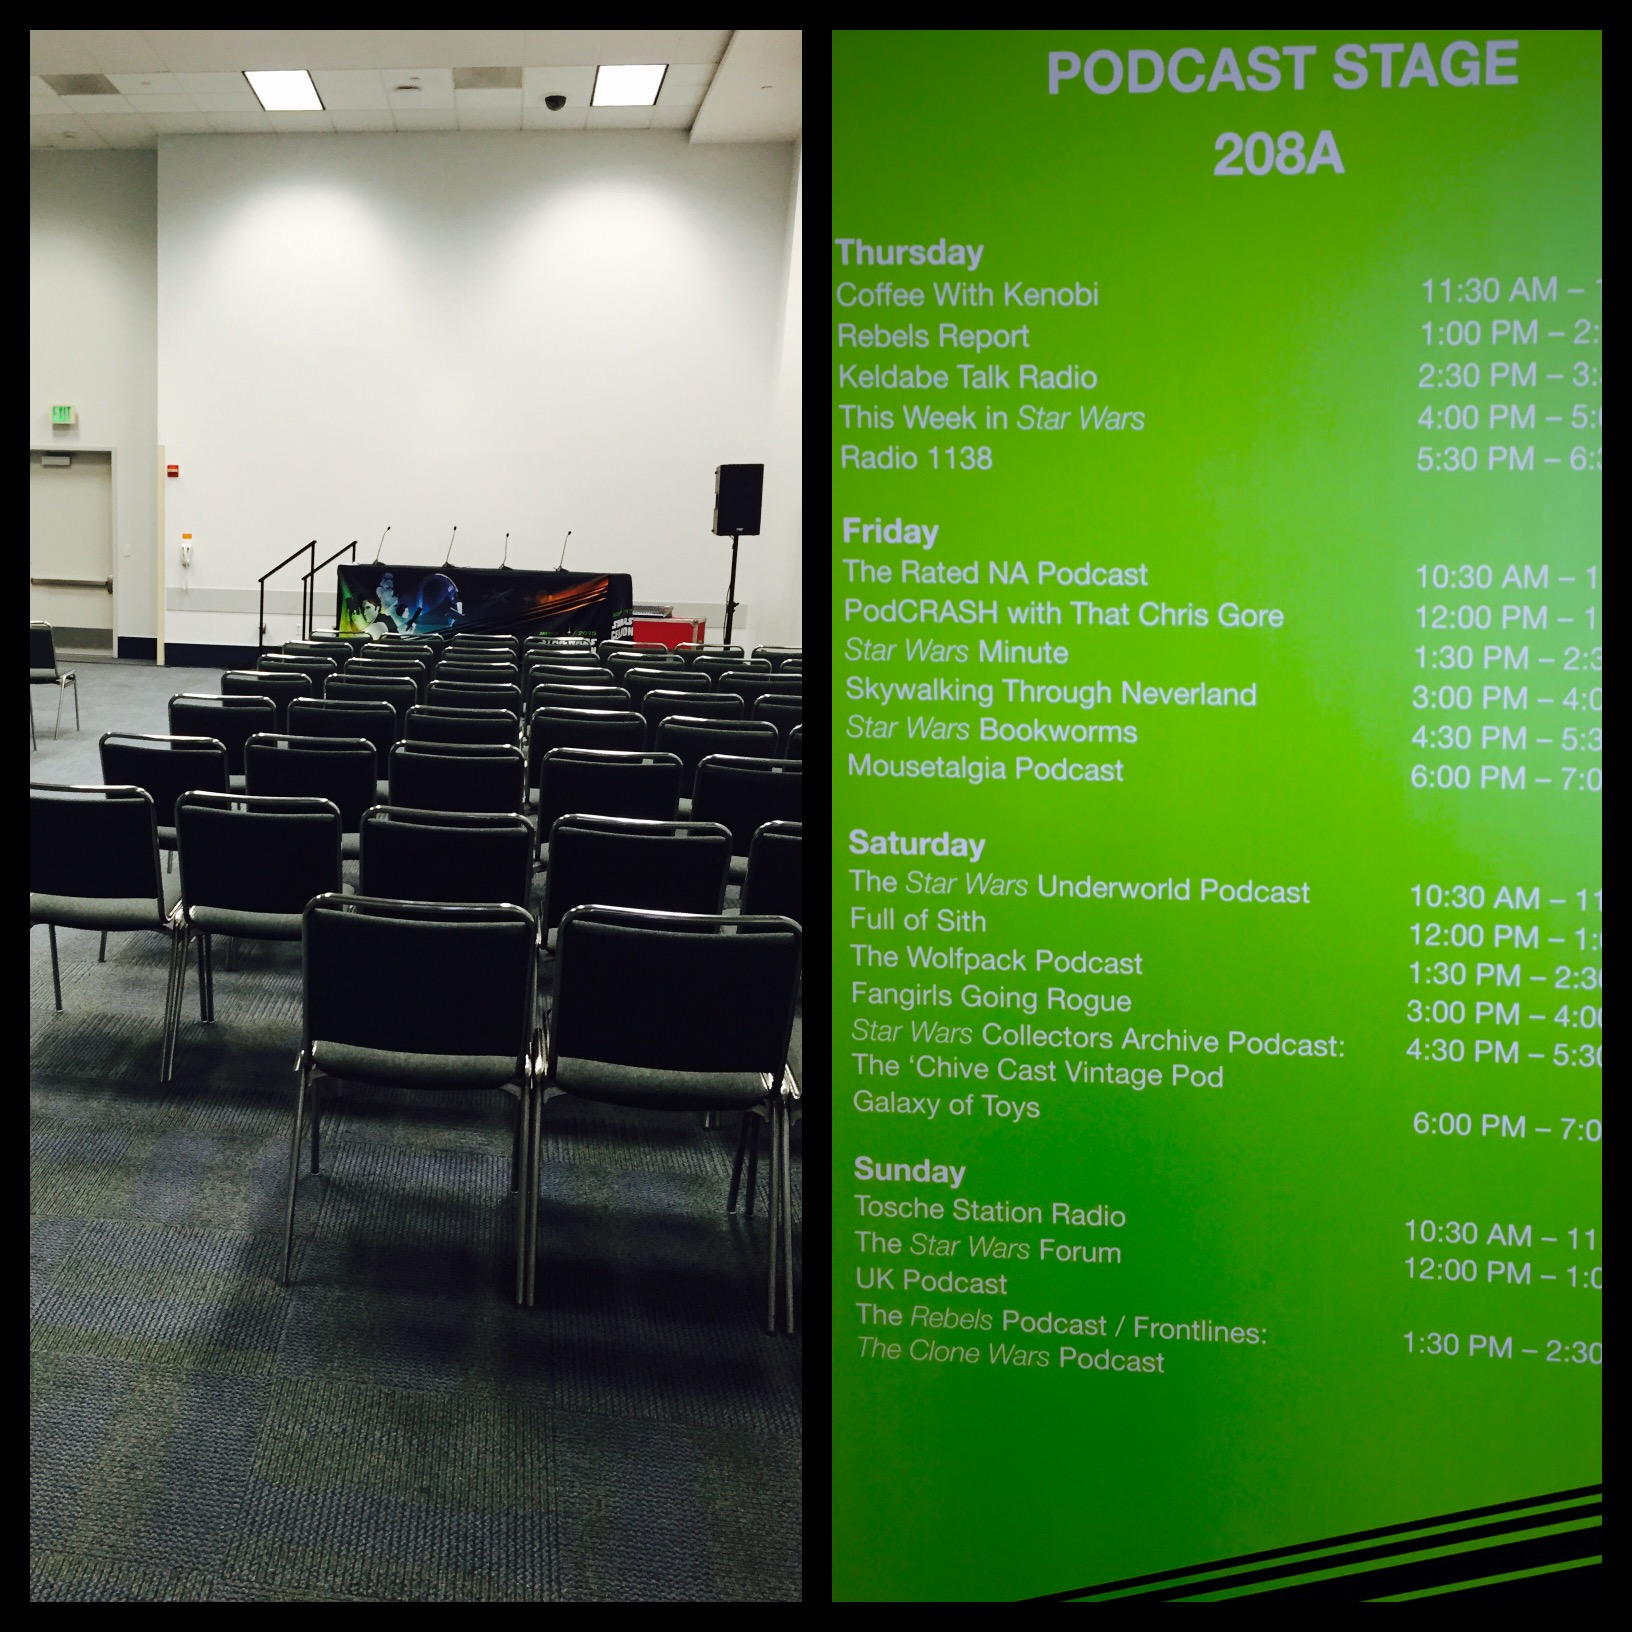 Inside Celebration Anaheim's Podcast Stage | StarWars com